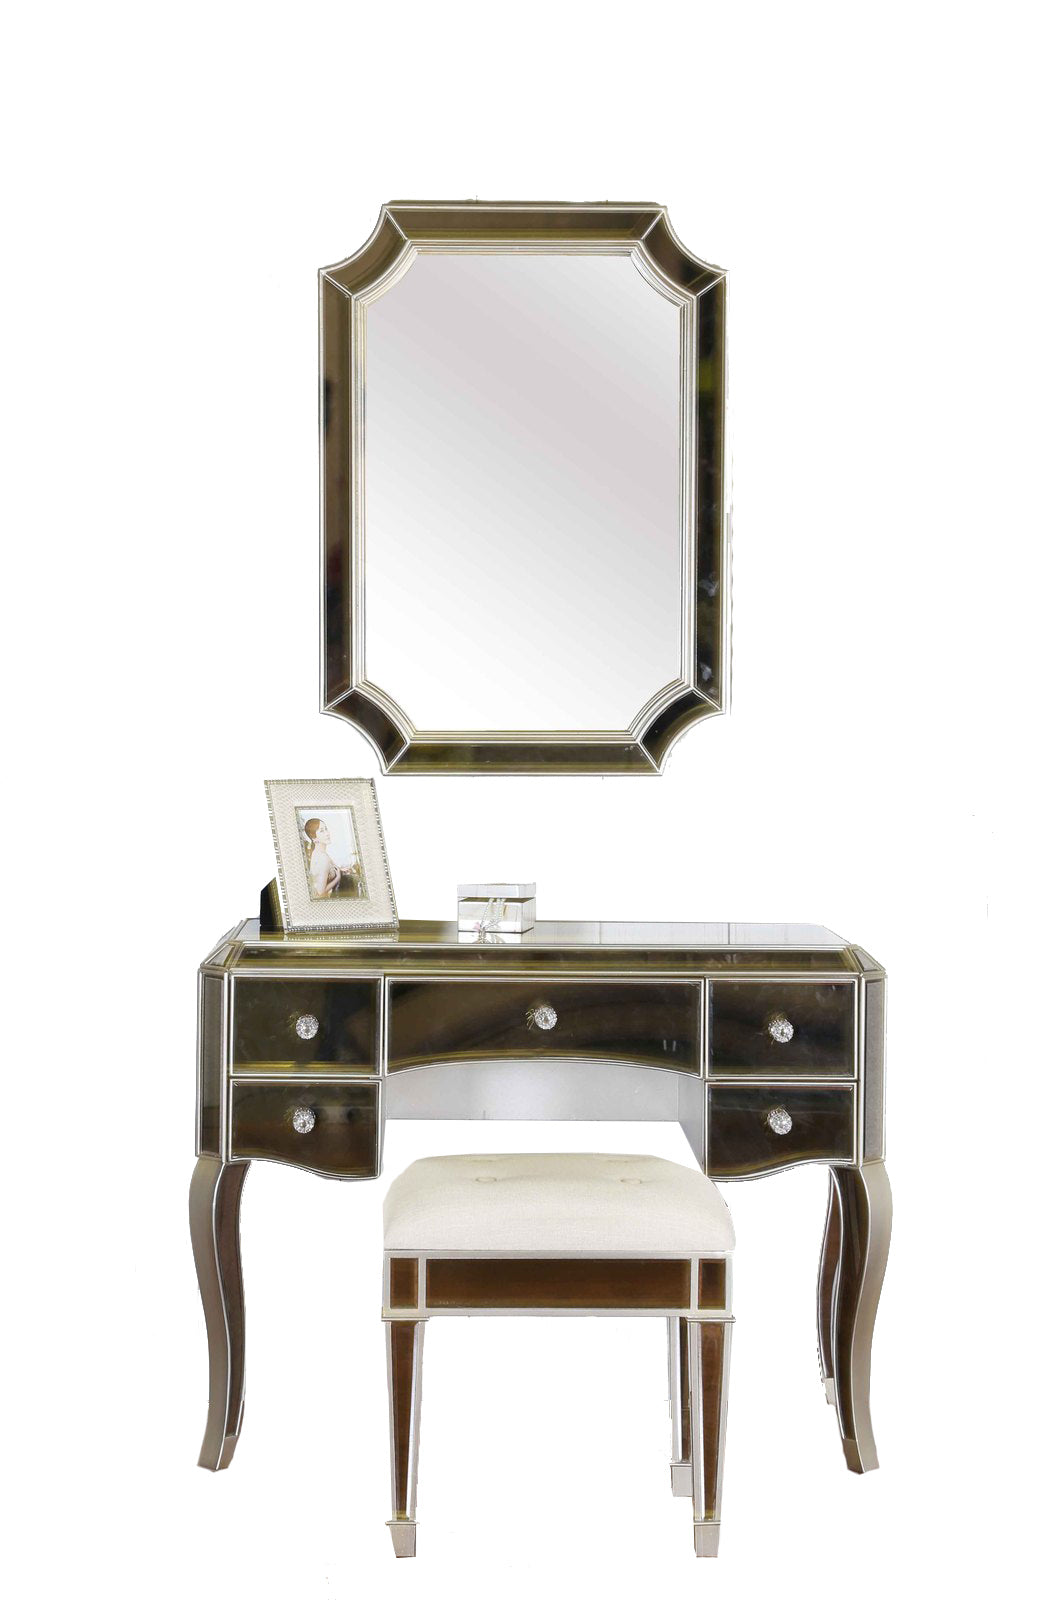 3 piece Dressing Table Set